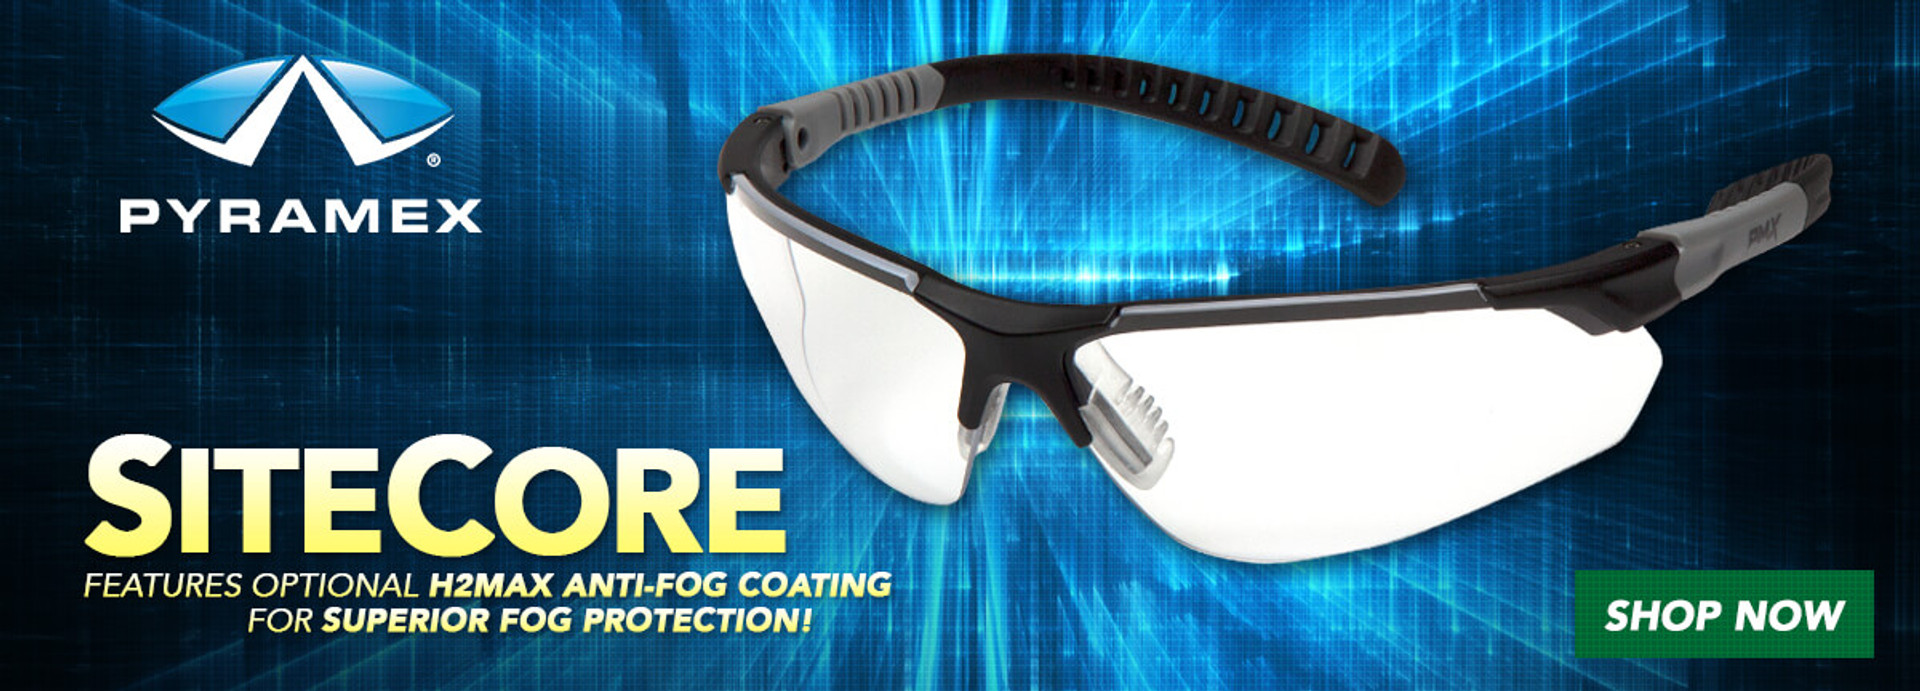 Pyramex SiteCore Safety Glasses & Sunglasses